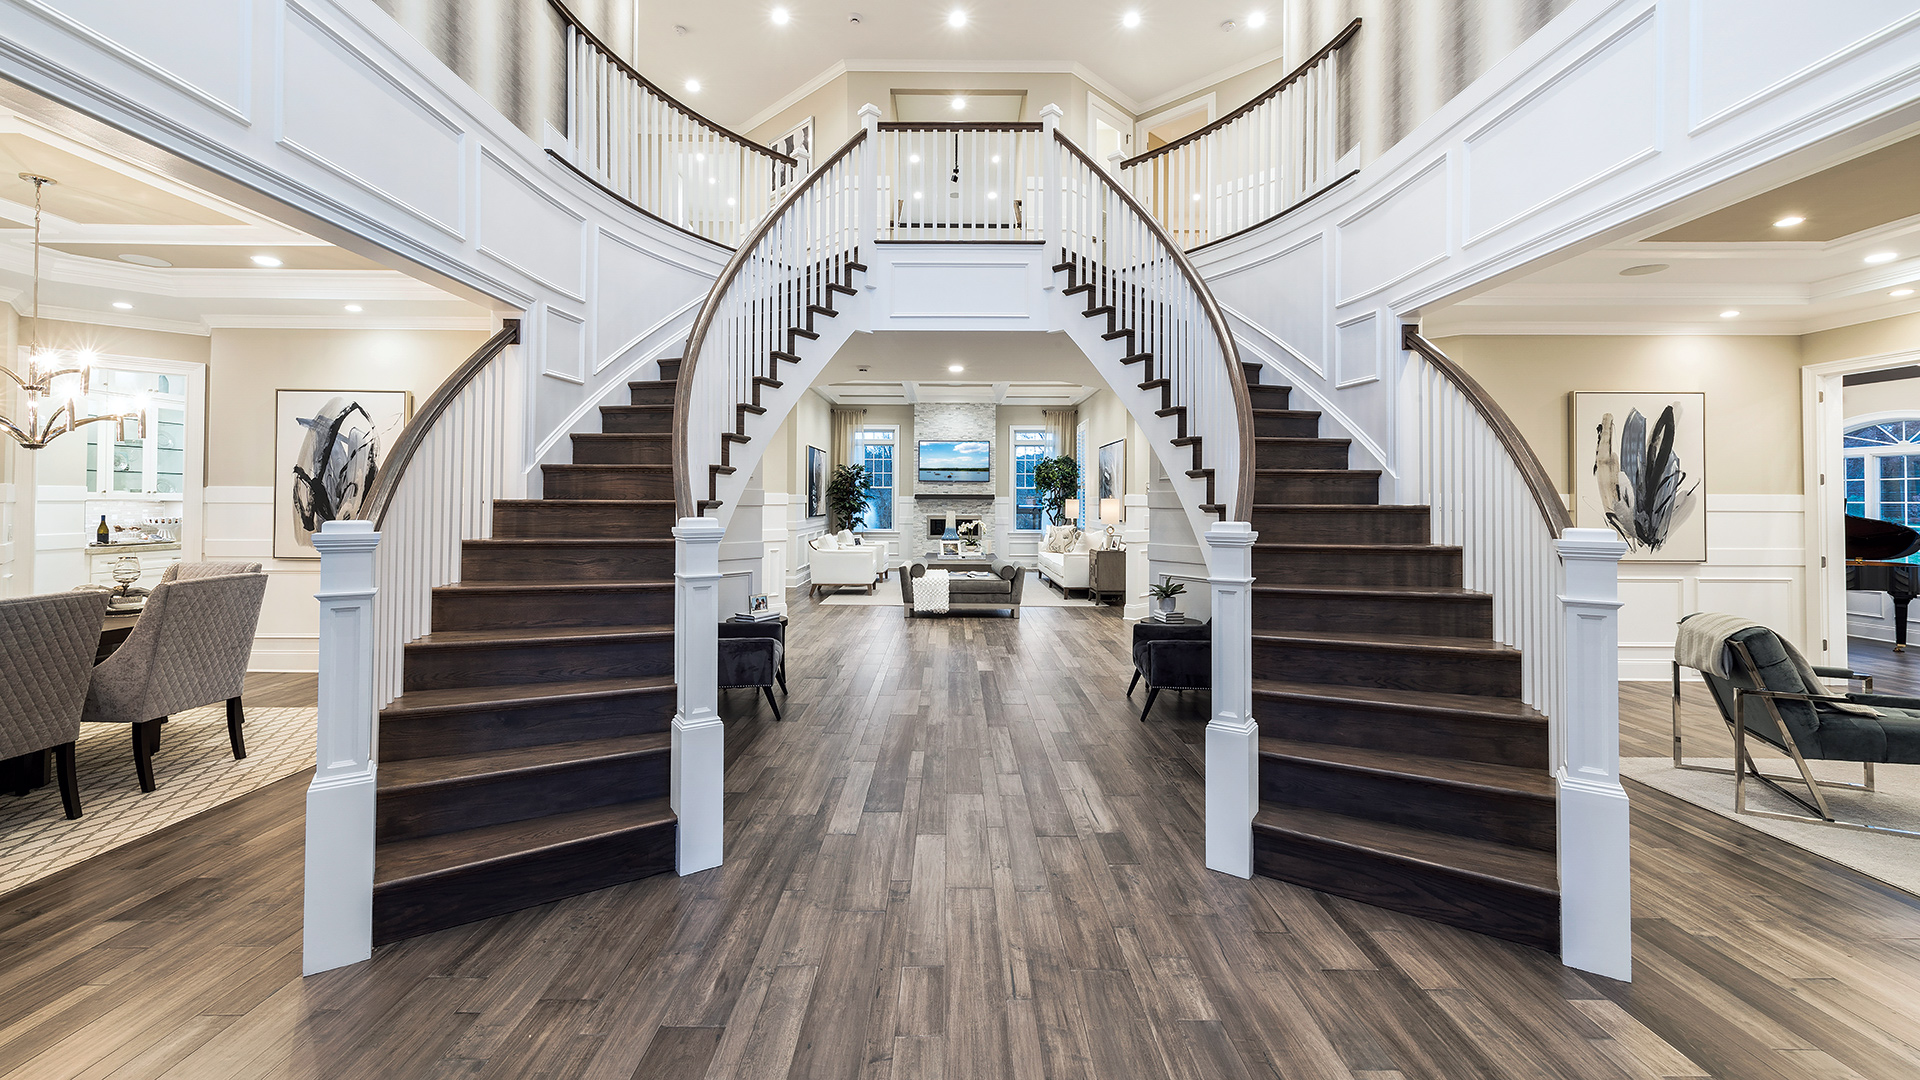 Impressive two-story foyers welcome guests